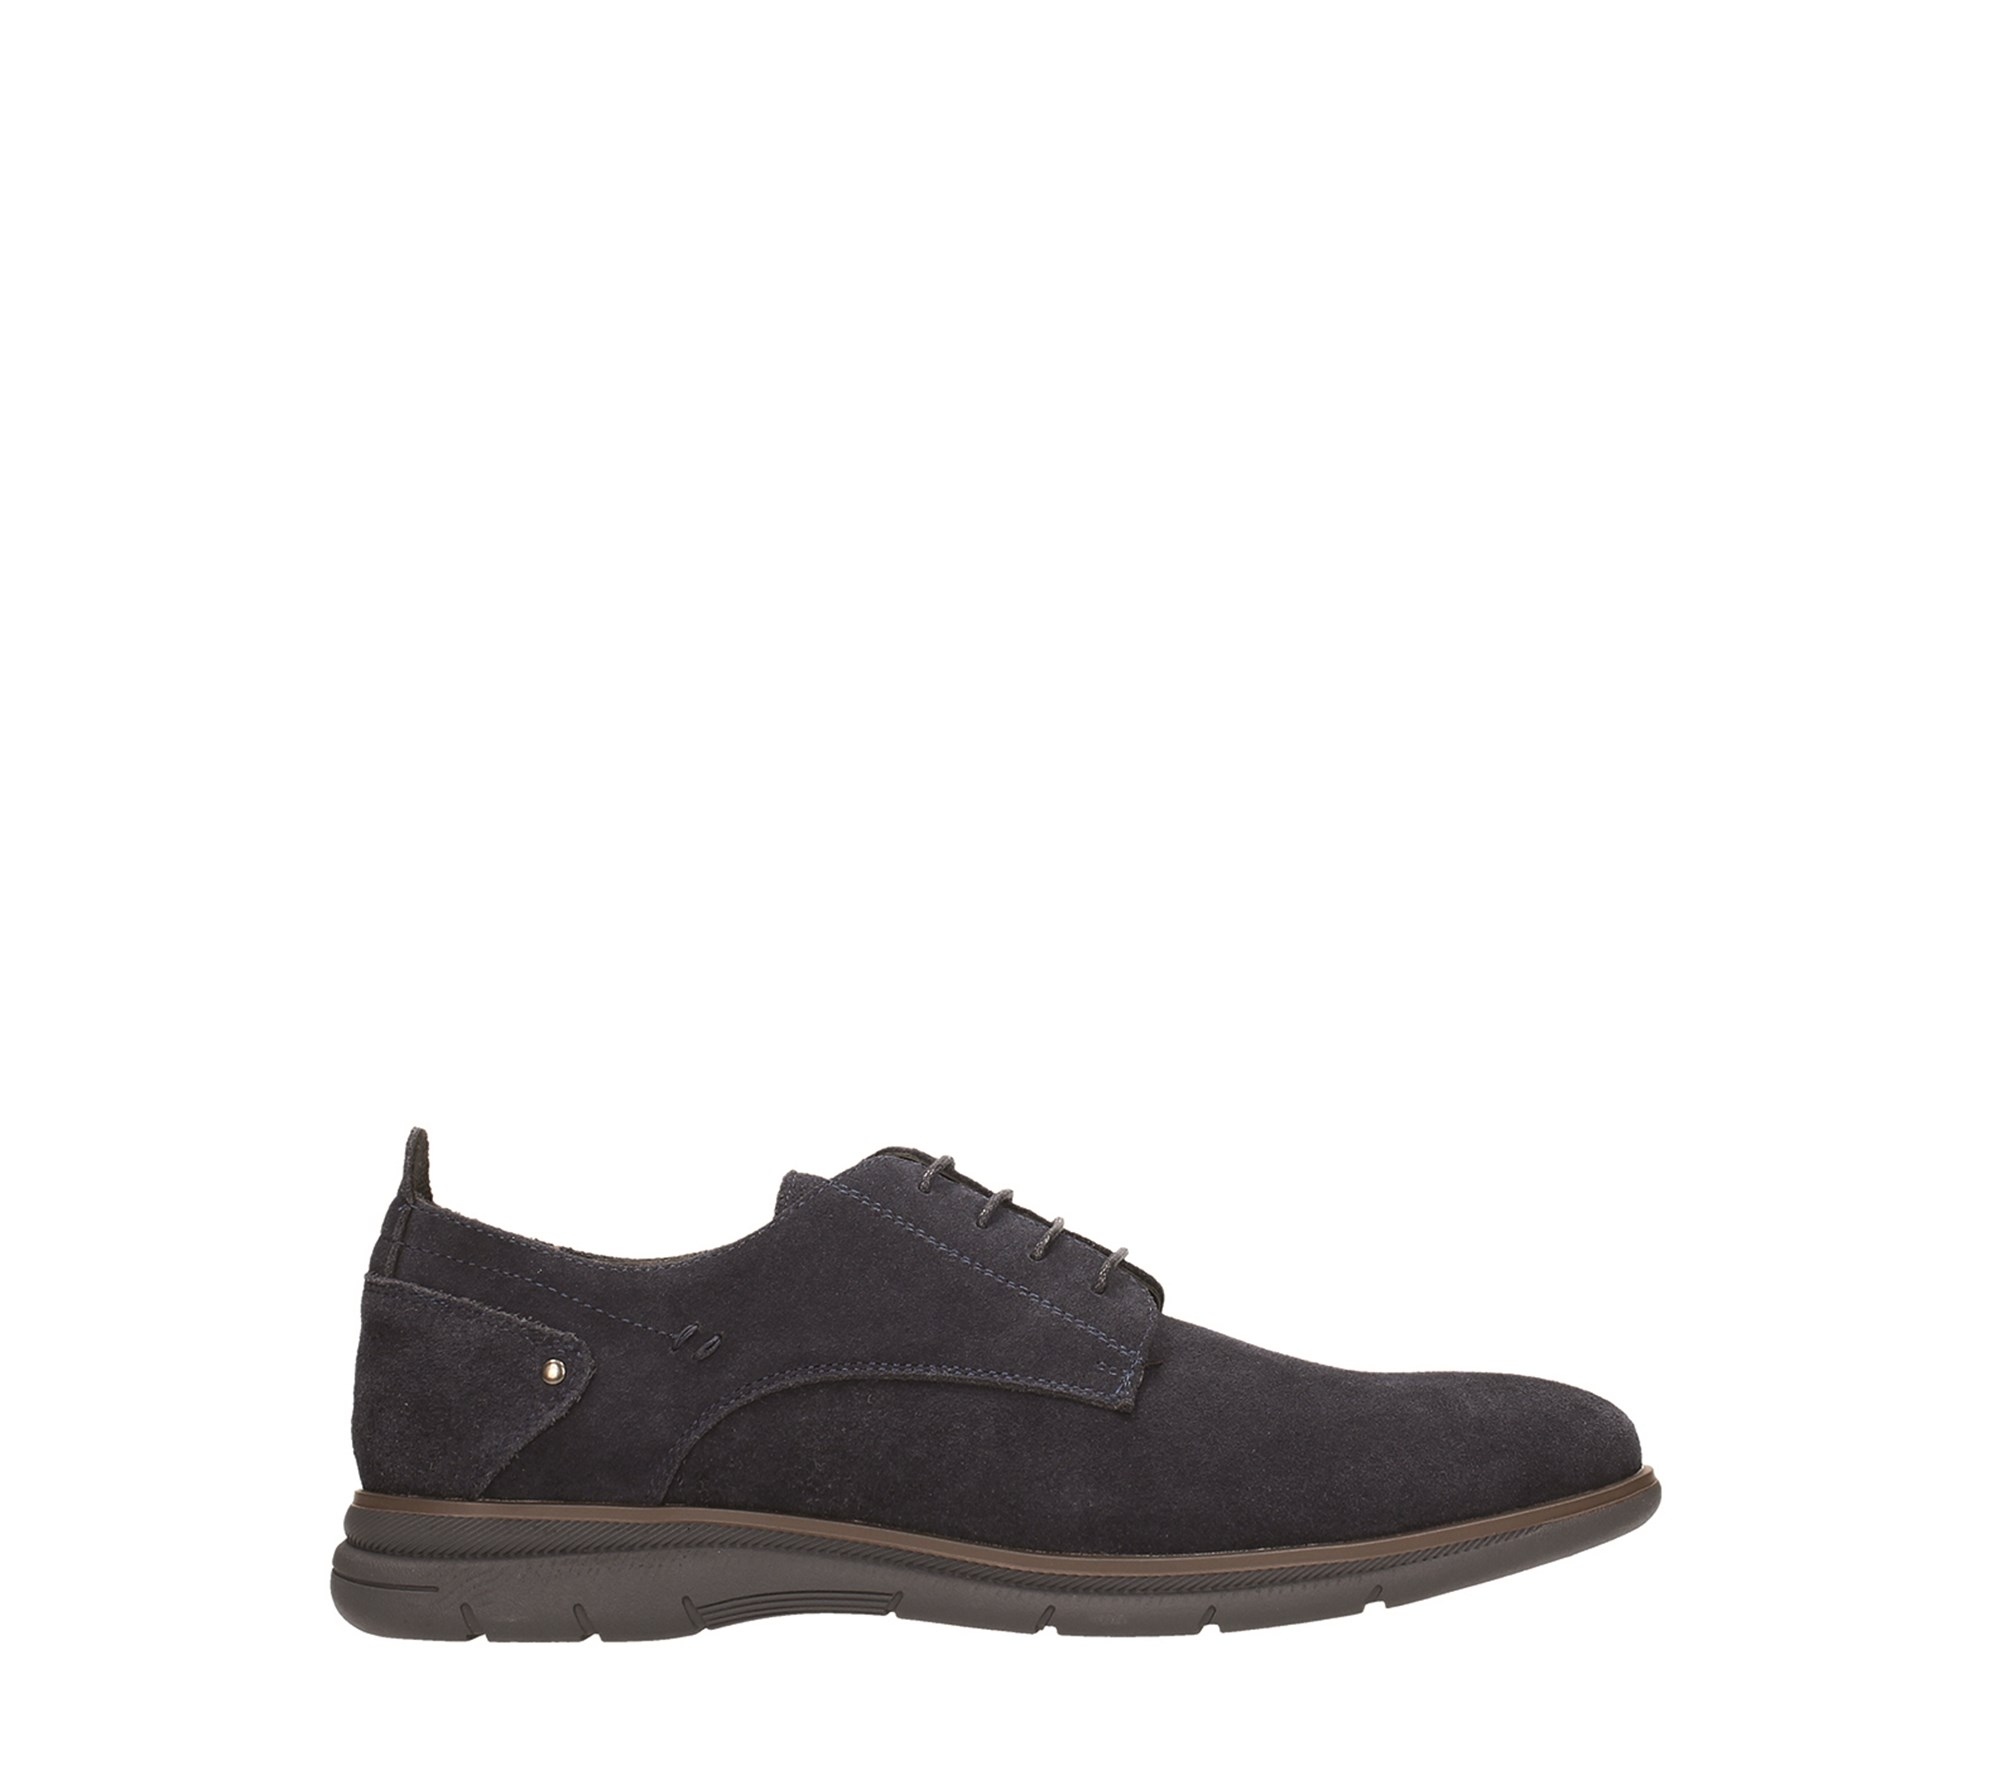 Tata Italia Shoes Man Derby C661-03